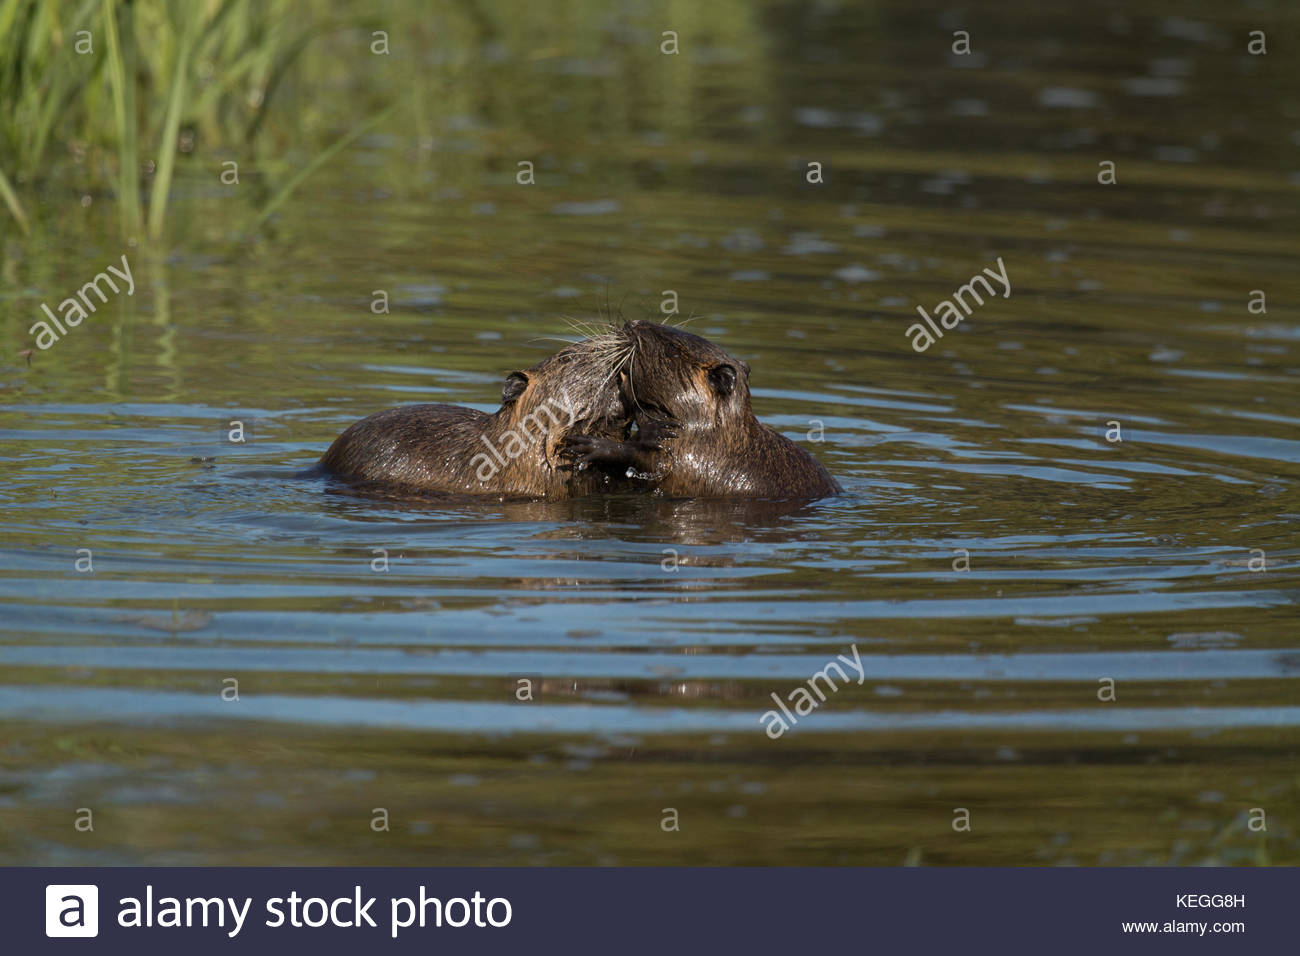 Two young coypus rodents (Myocastor coypus) playing and biting in the water. Nutria - Stock Image